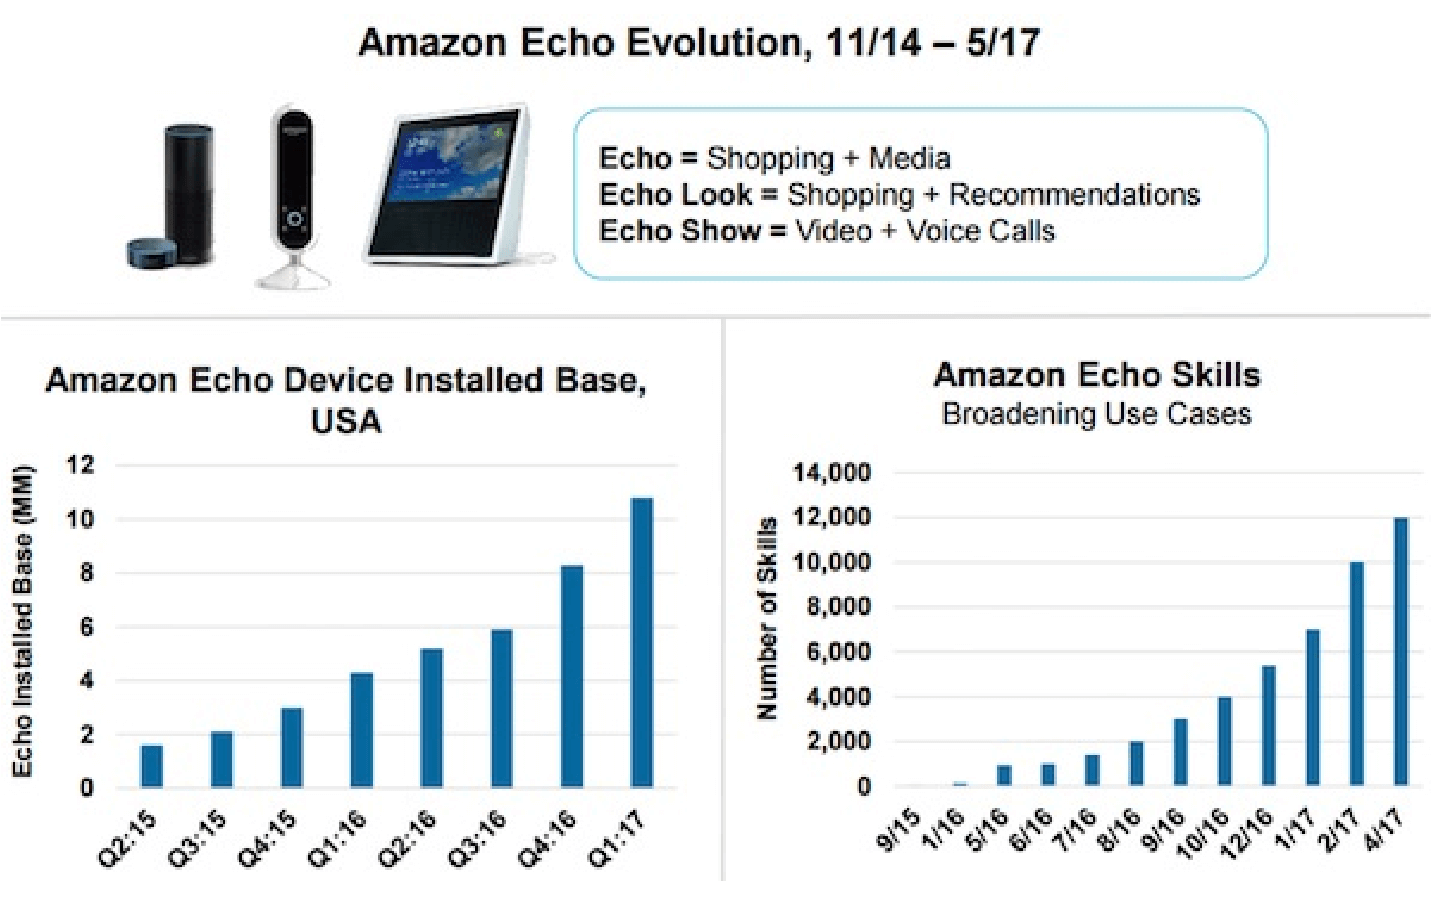 Amazon Echo Evolution